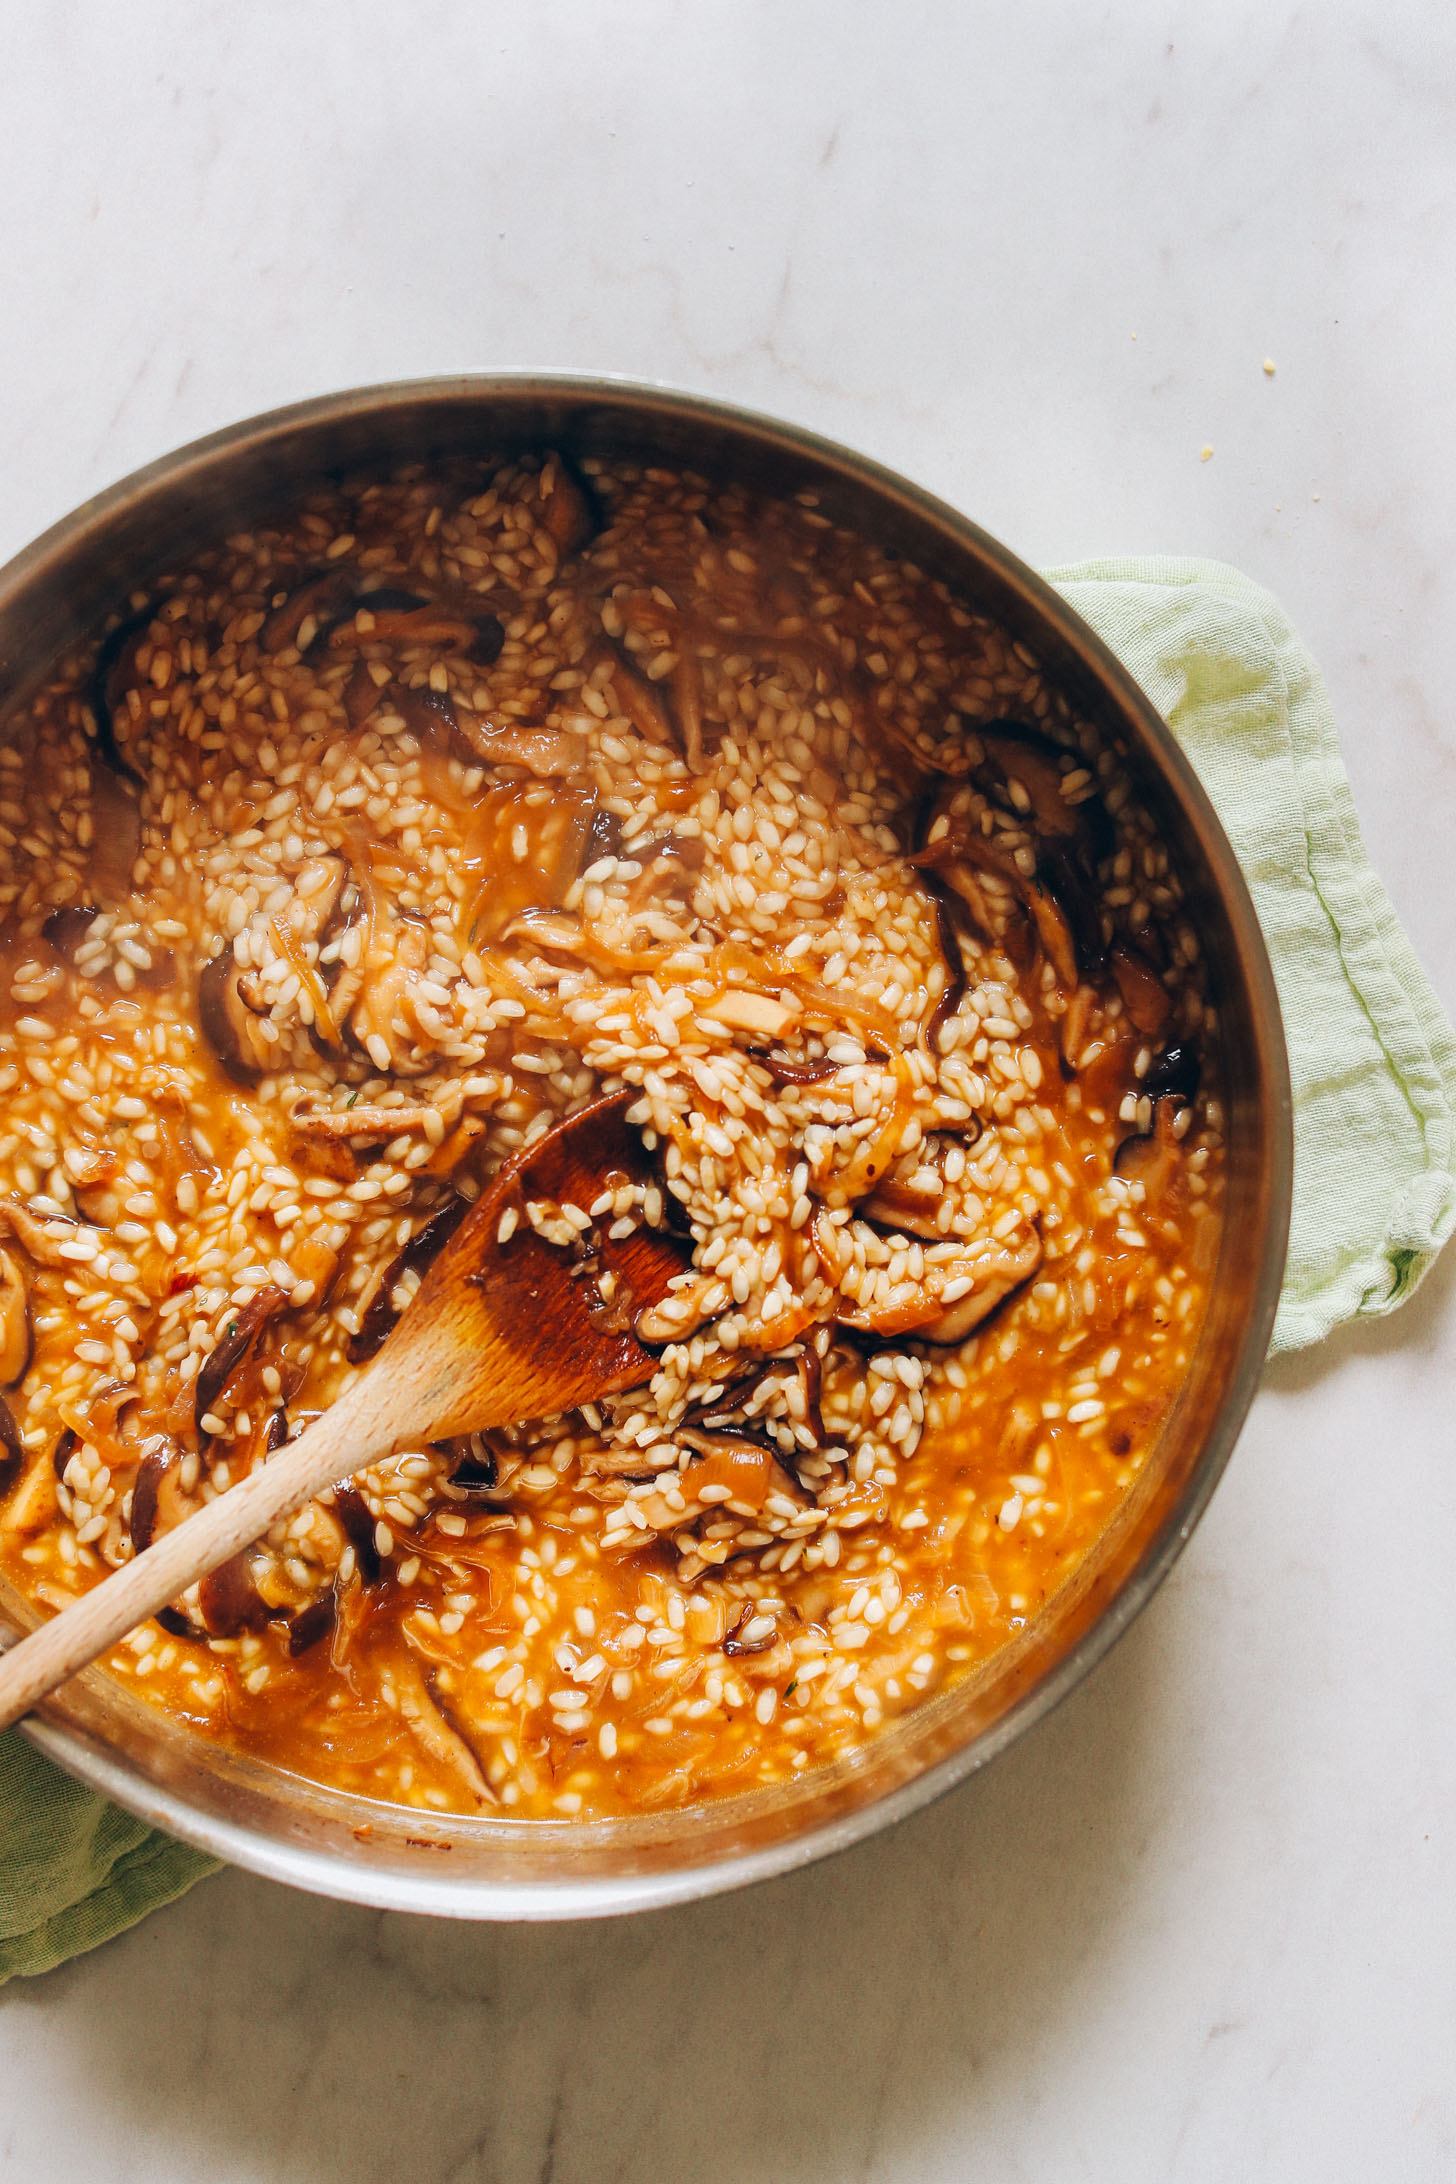 Stirring a batch of our Vegan Caramelized Shiitake Mushroom Risotto recipe